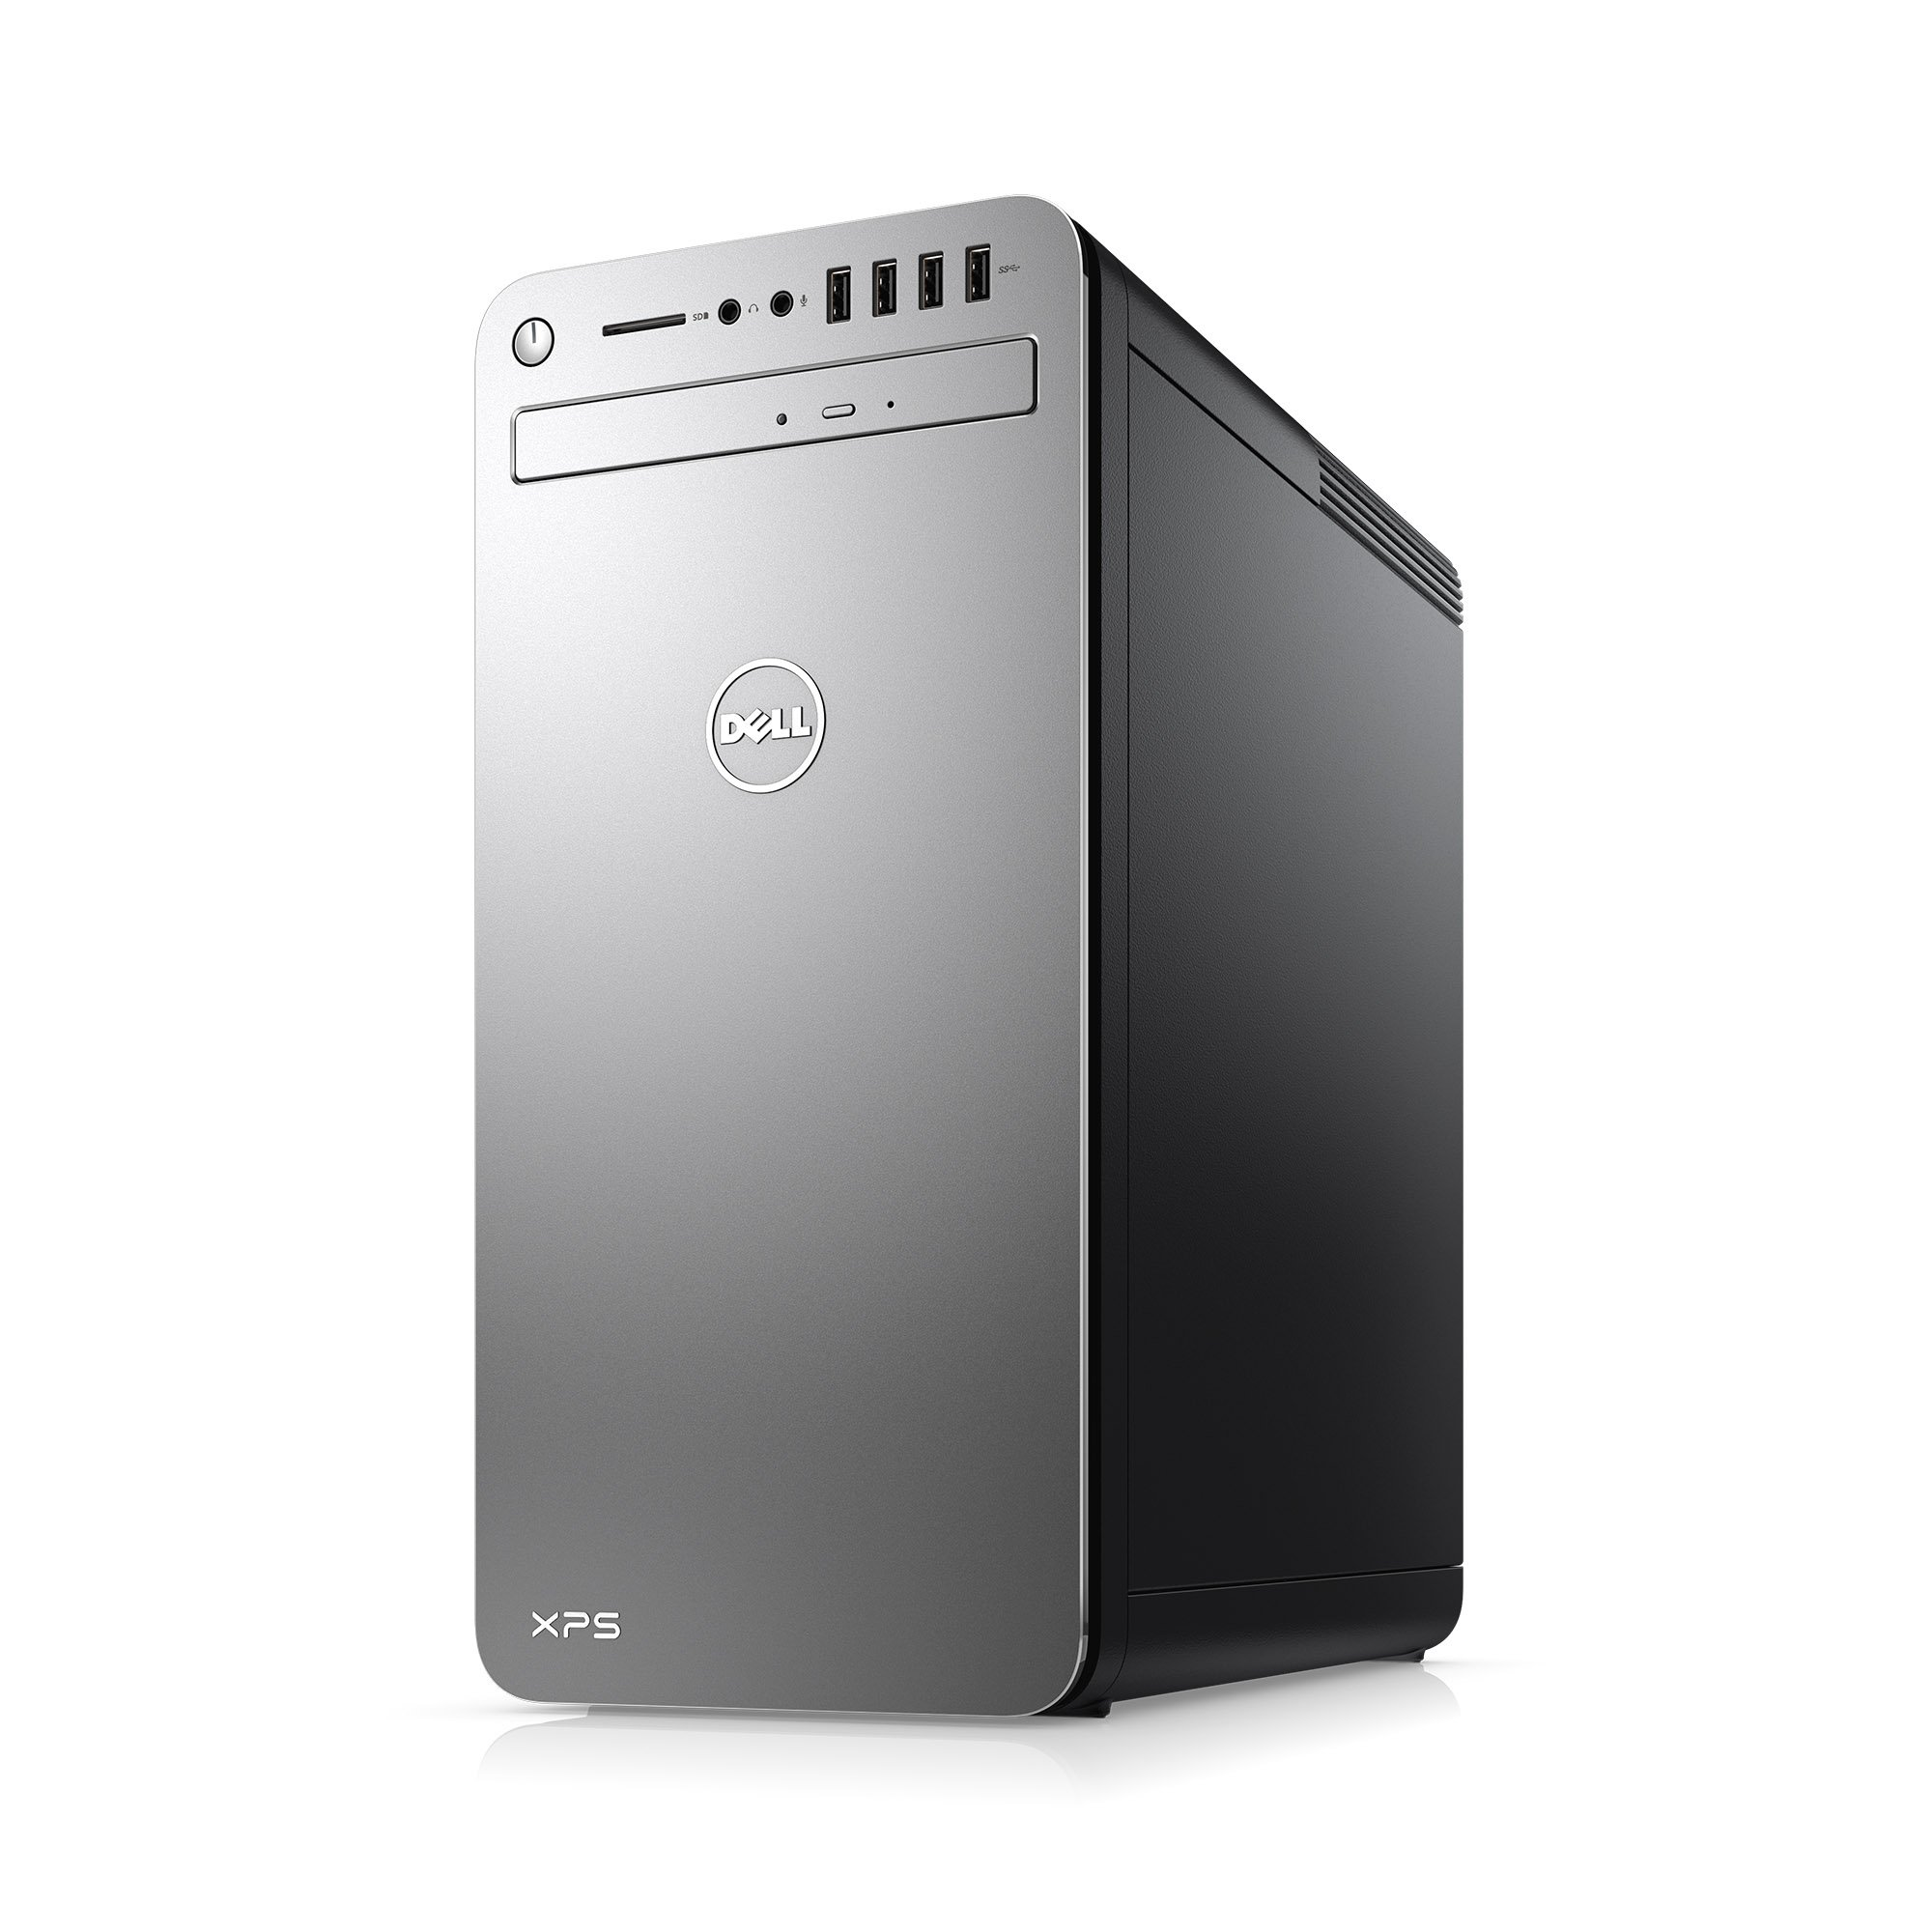 Dell XPS 8920 XPS8920-7529SLV-PUS Tower Desktop (Silver) by Dell (Image #8)